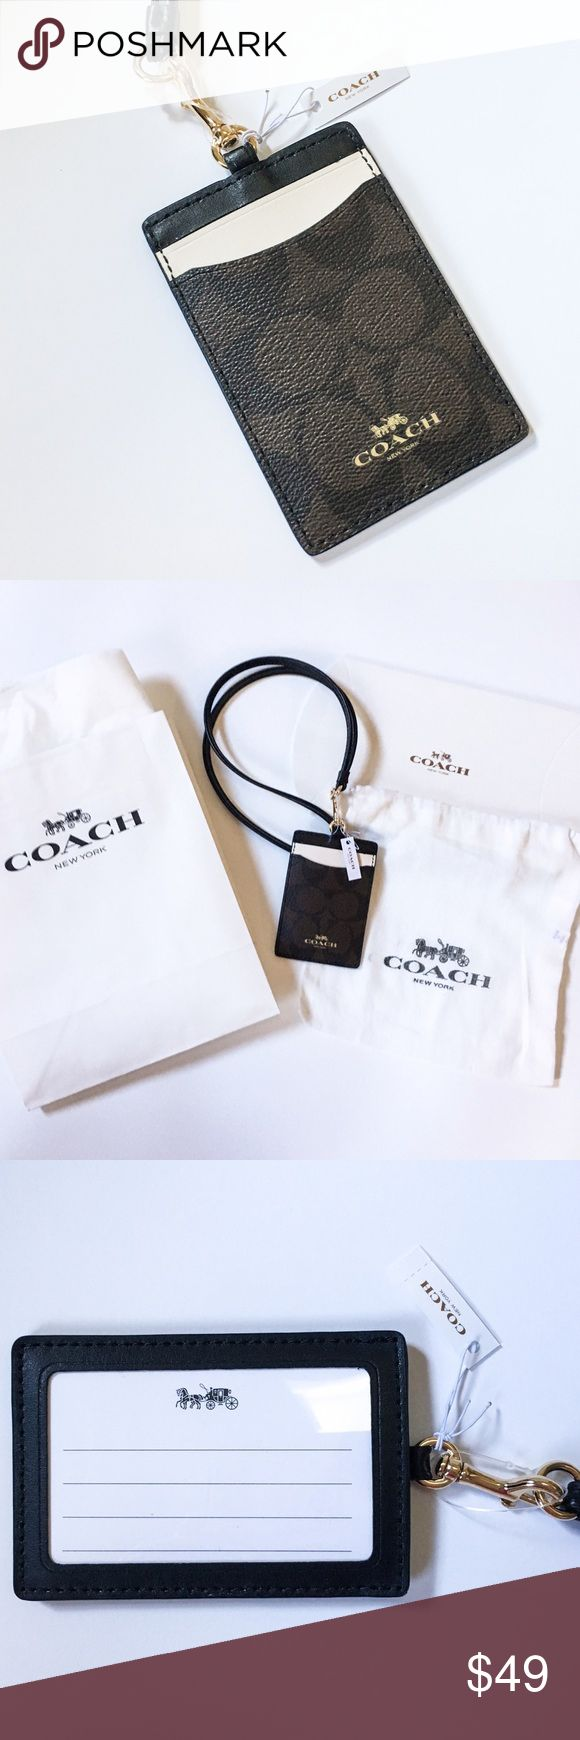 "Coach Signature Lanyard Color Block ID Holder Authentic NWT Coach signature jacquard lanyard made from luxurious leather material with clear plastic window for picture ID and slots for other cards. I receive many complements on mine! Strap drop of the necklace is 15"" total circumference is 30."" The strap is slightly curved at first, but straightens out after use. This chic lanyard is new with tags and never worn! Perfect for gift giving or for your fabulous with gift box, dust bag, paper…"